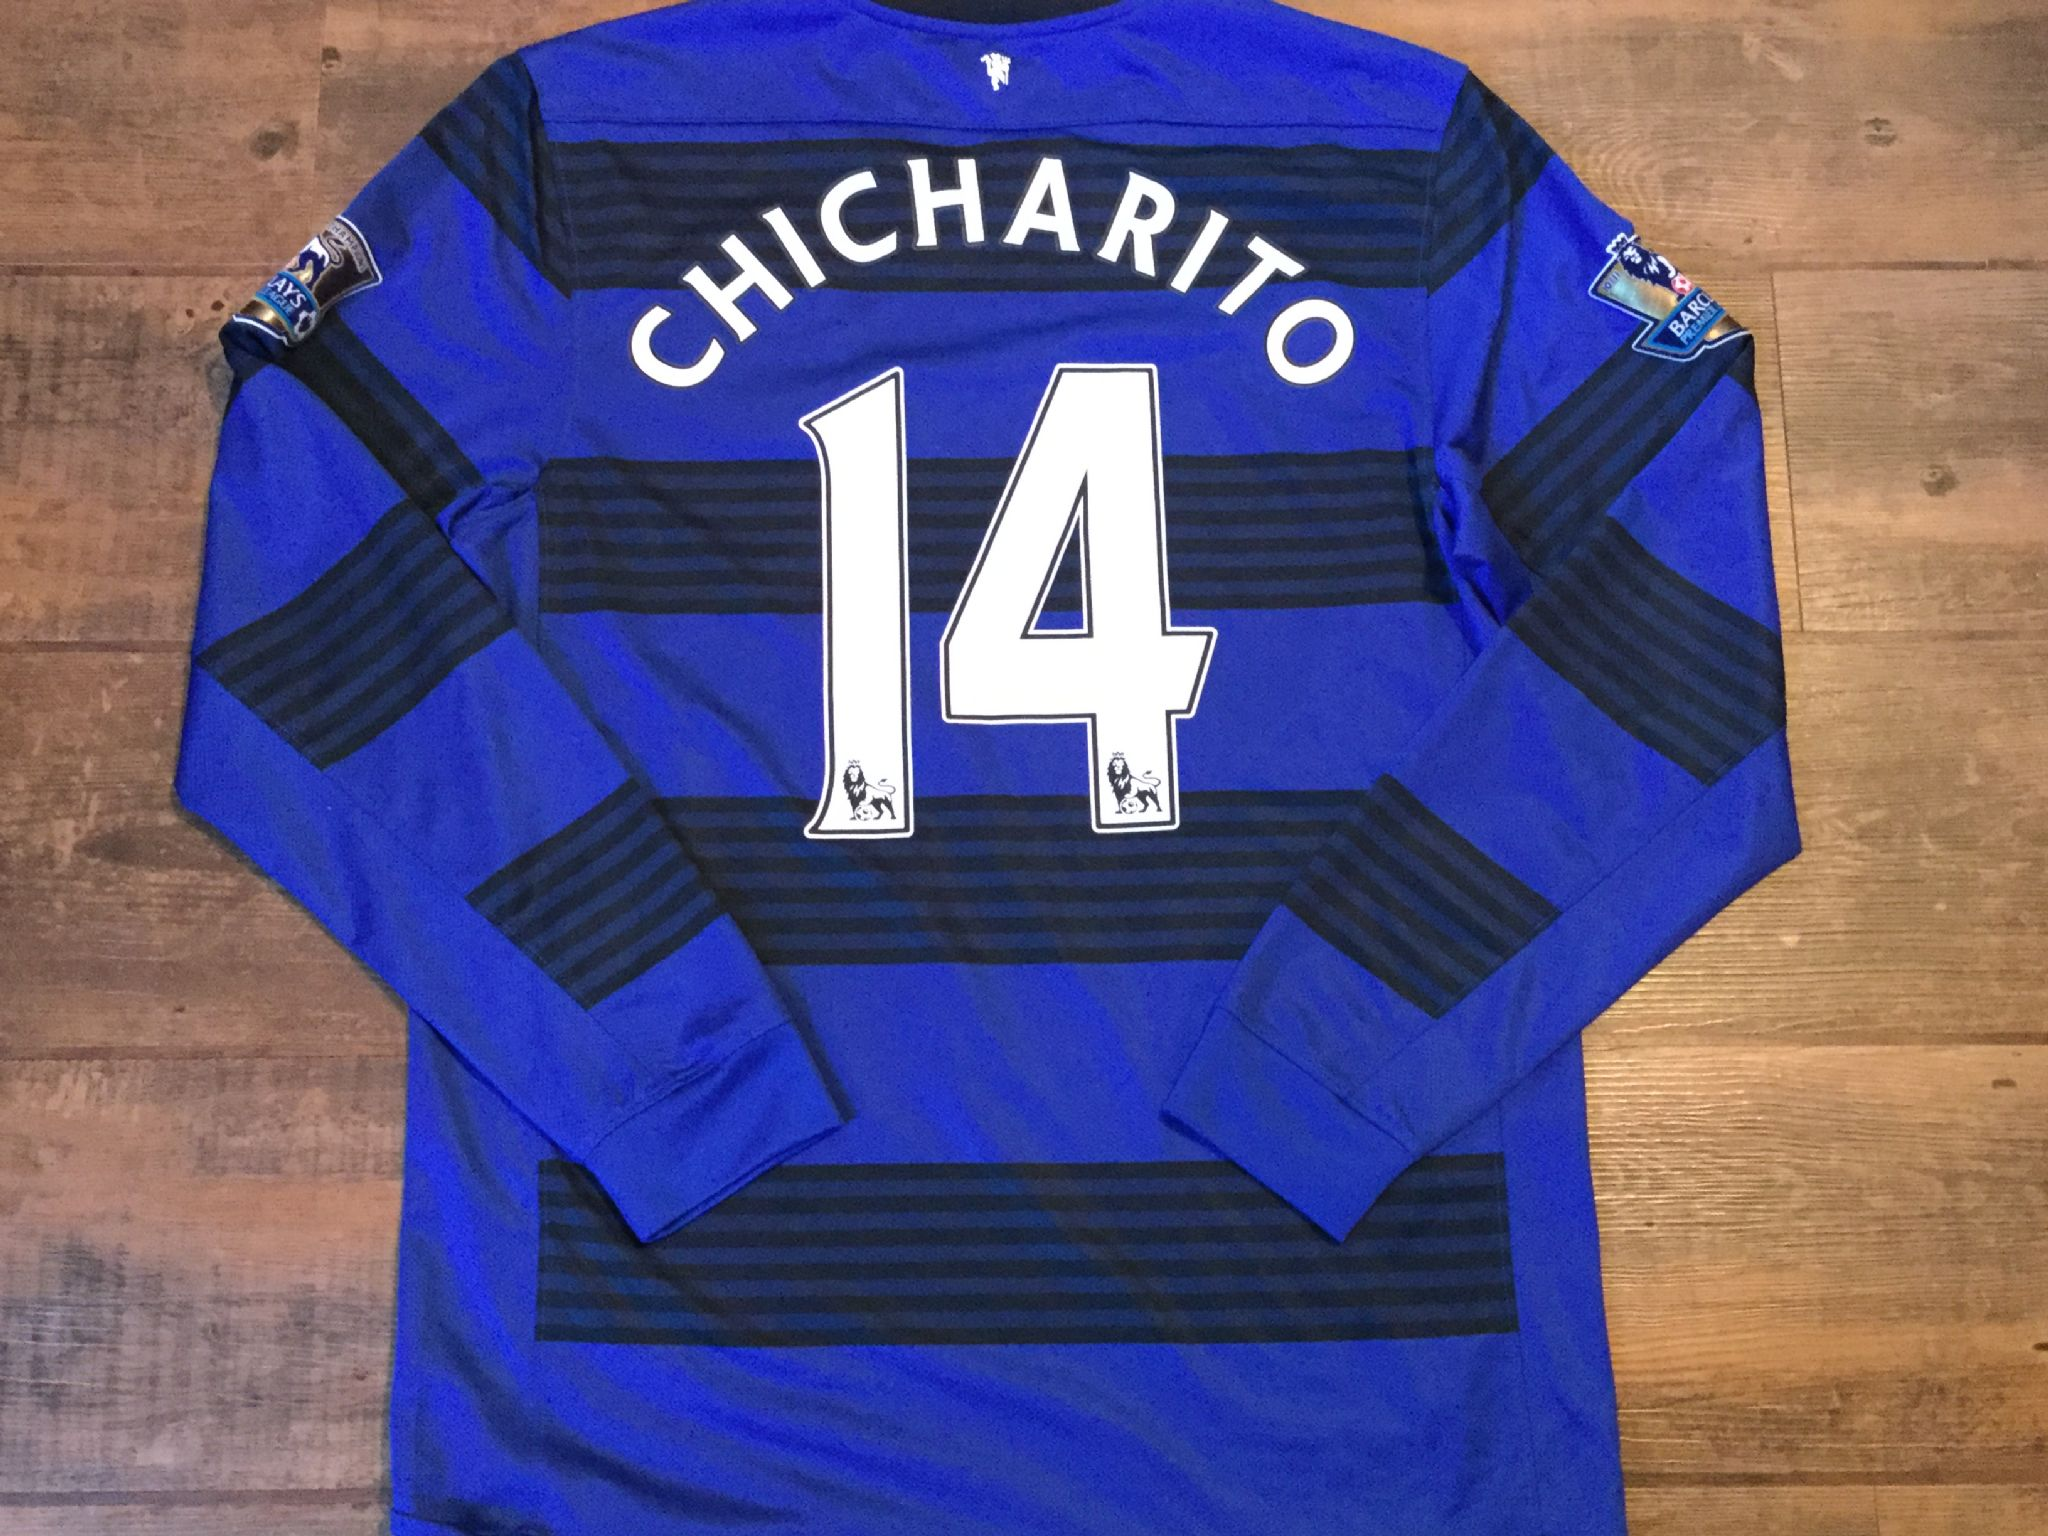 873f3a374c2 2011 2012 Manchester United L s Chicharito Away Football Shirt Adults Medium